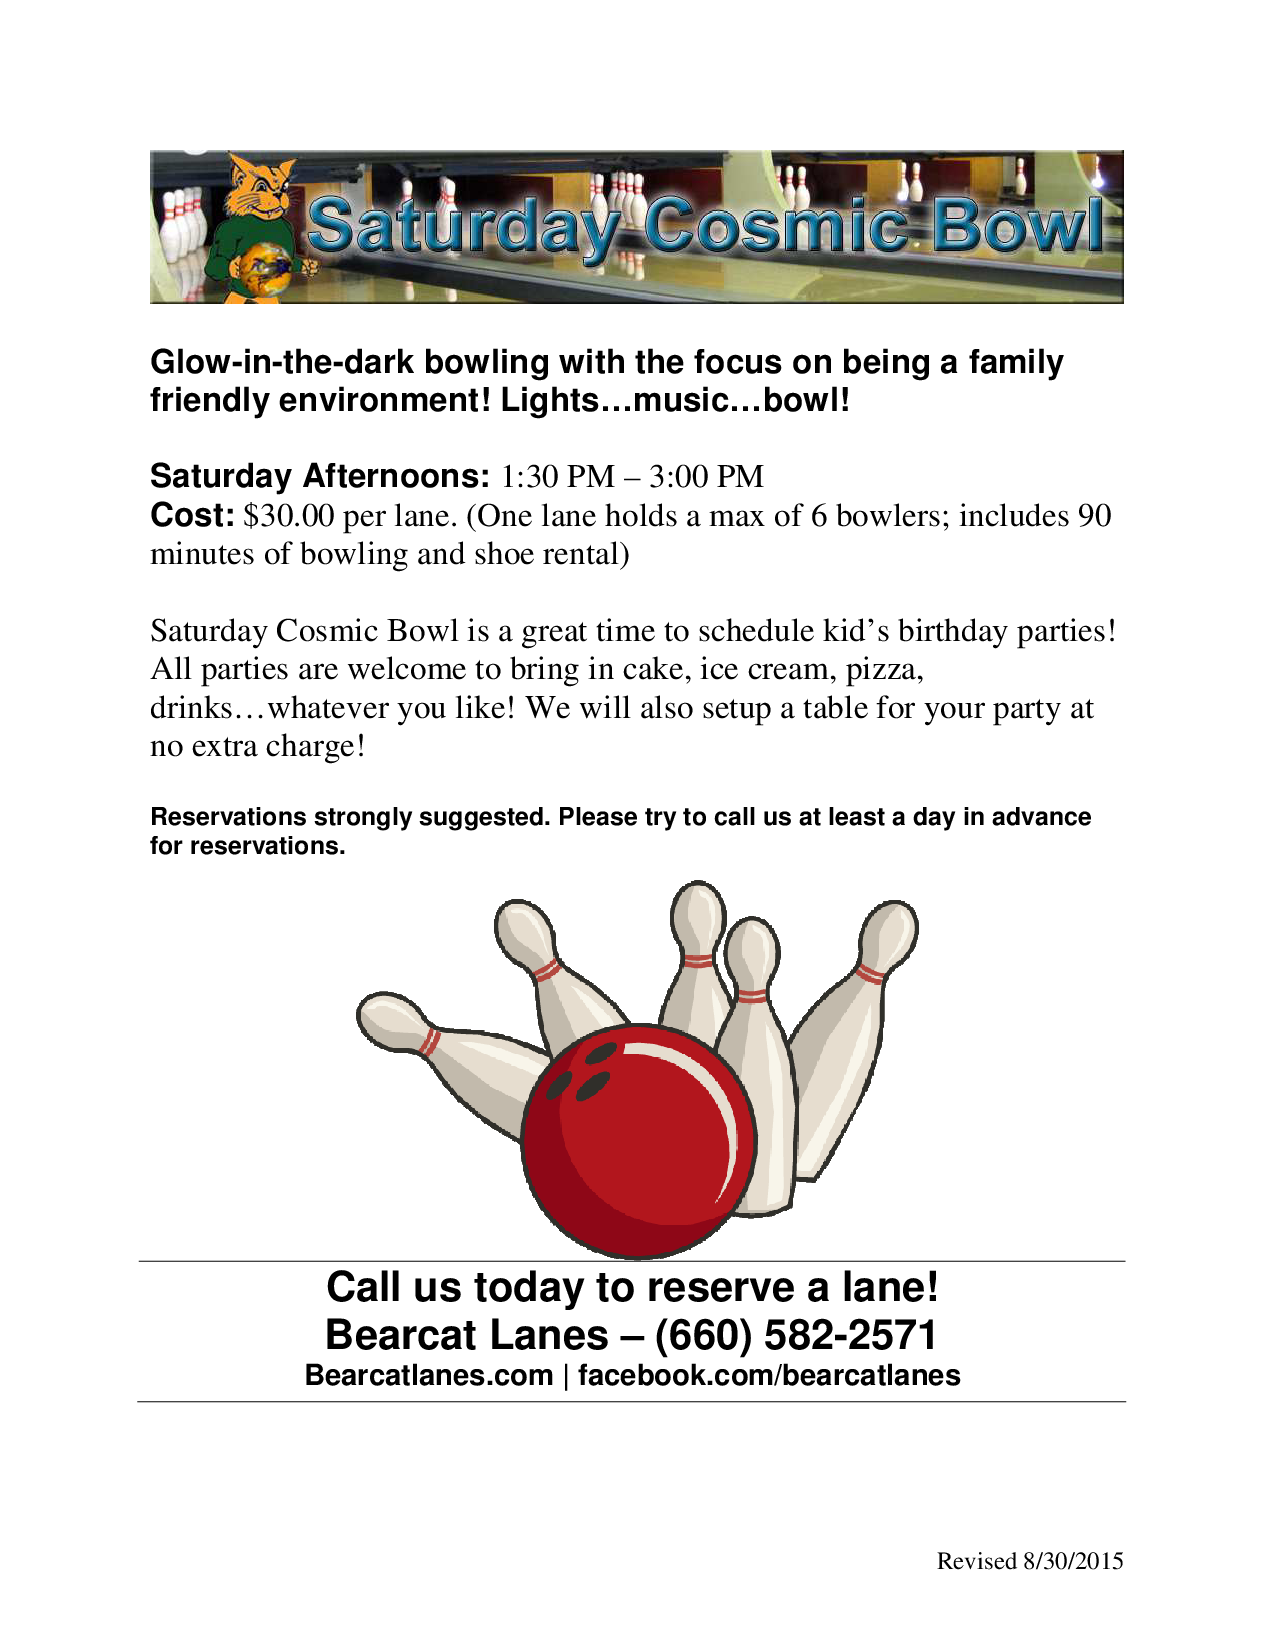 Saturday Cosmic Bowl